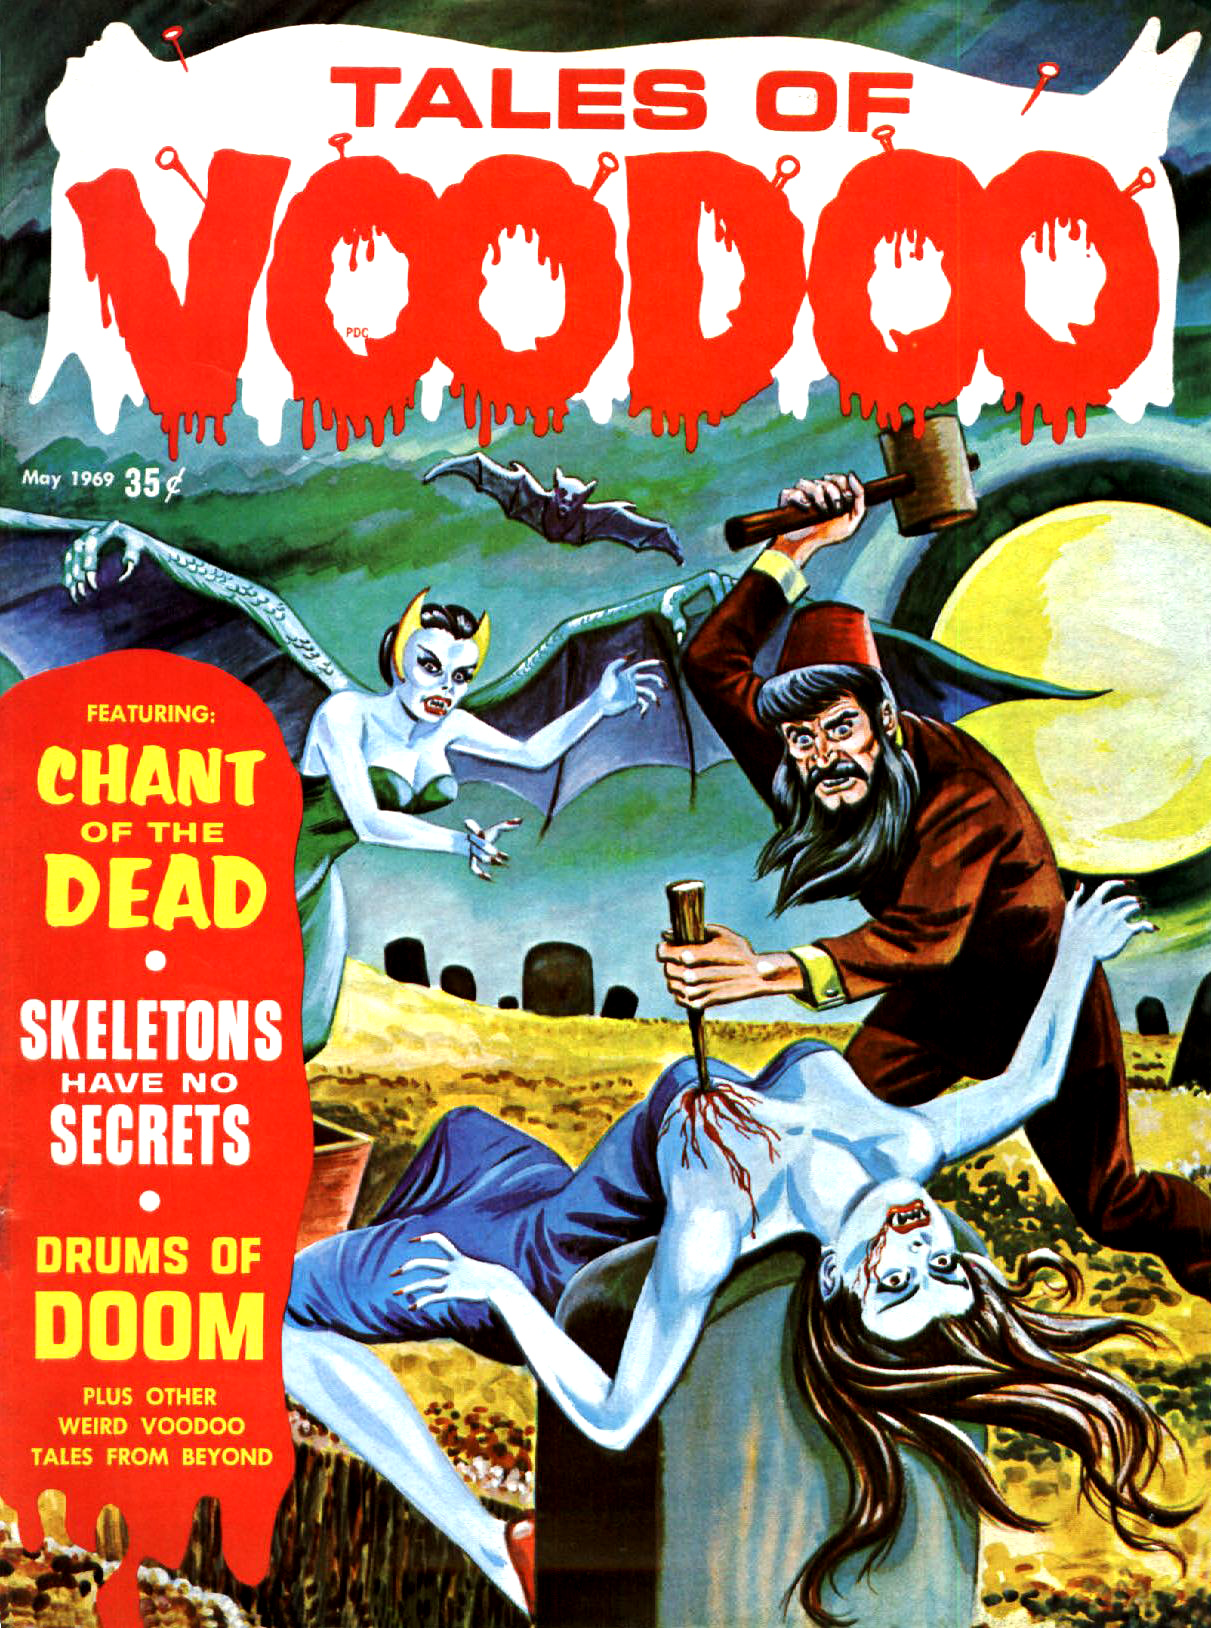 Tales of Voodoo Vol. 2 #2 (Eerie Publications 1969